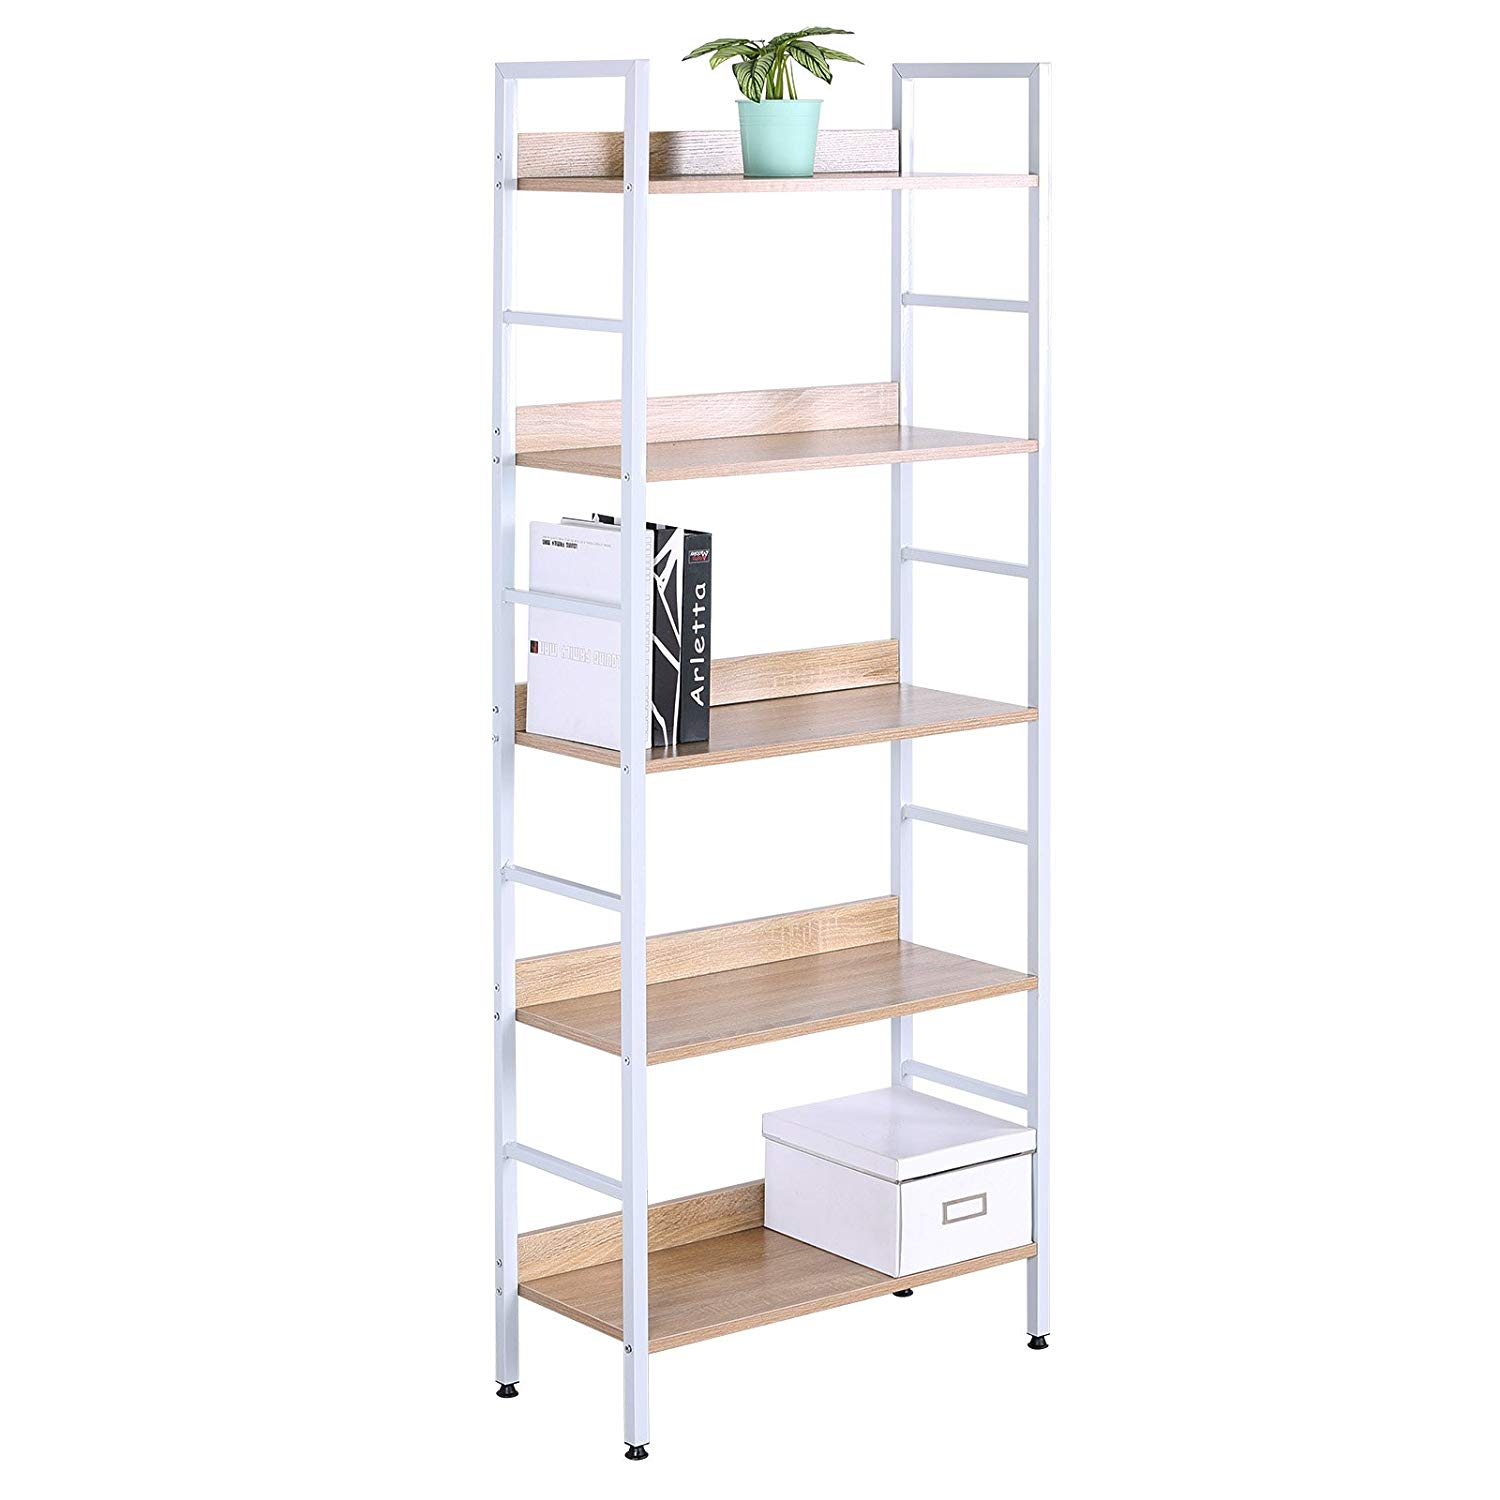 WOLTU 5 Shelves Bookshelf Wood Bookcases, Cabinets & Shelves for Corner and Library Bookcase Furniture Freestanding Display Shelf White Wood